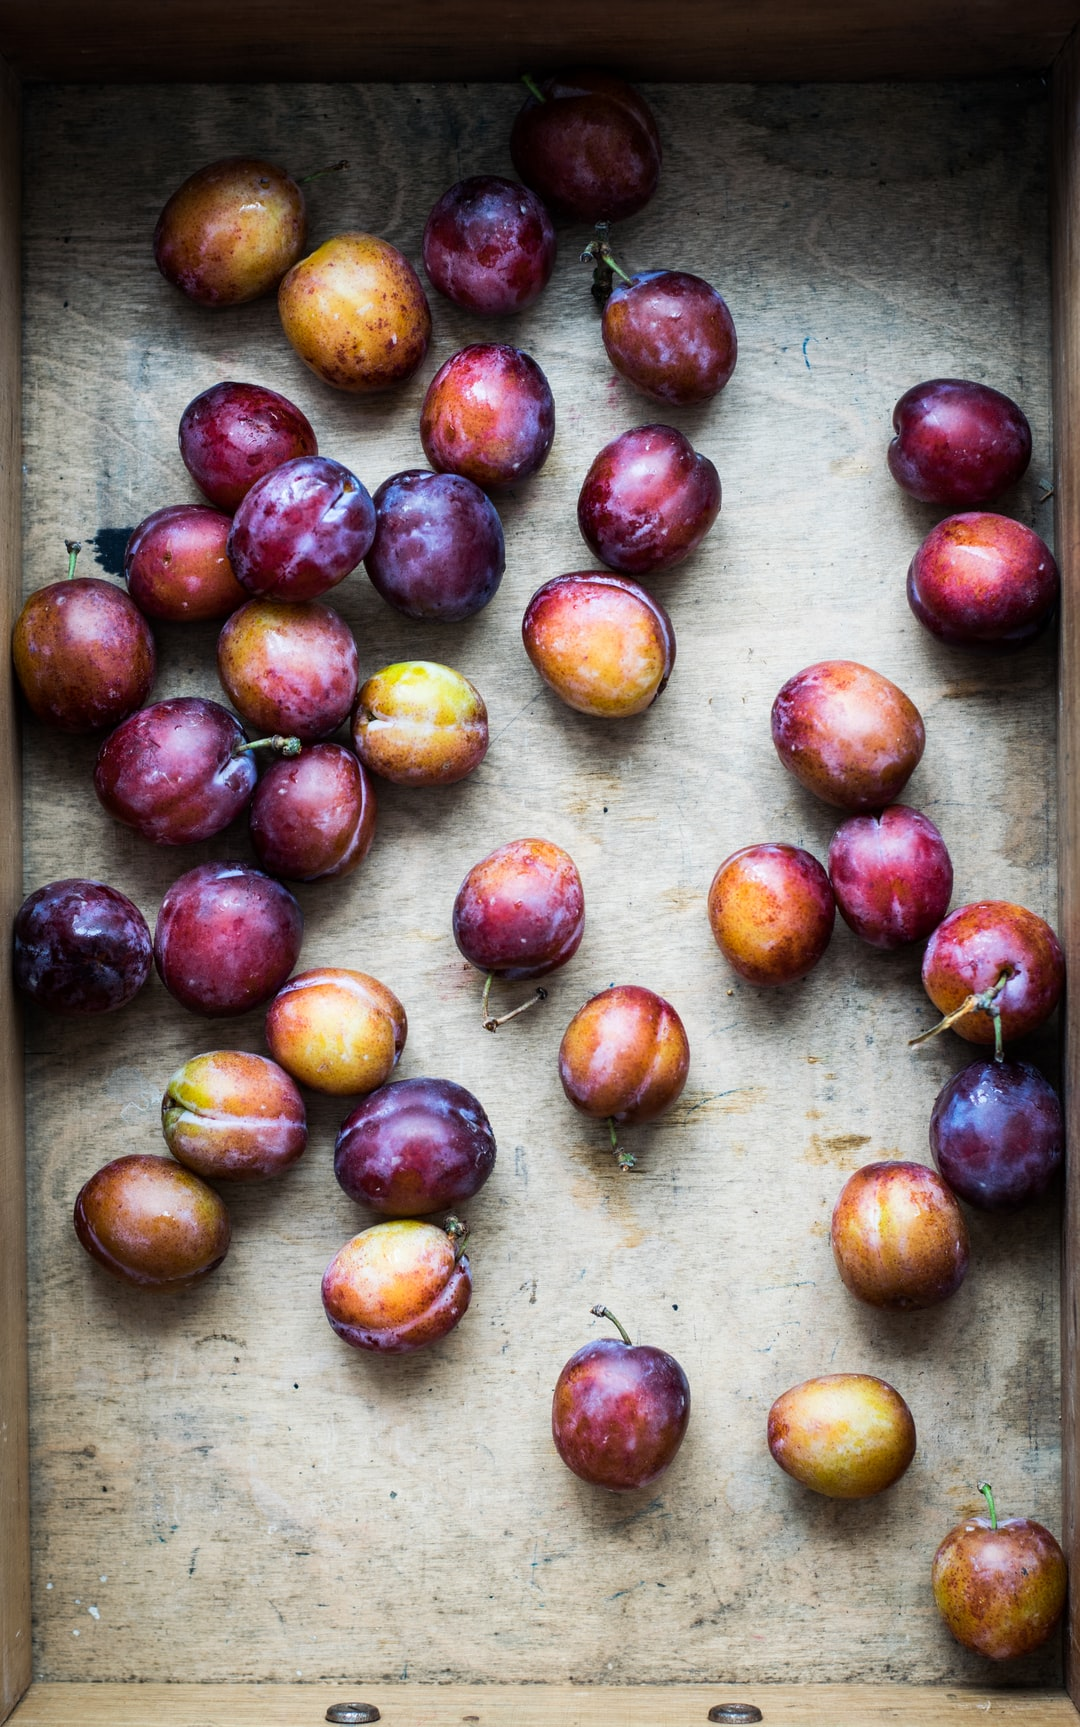 I'm charmed to see this light and color of plums!